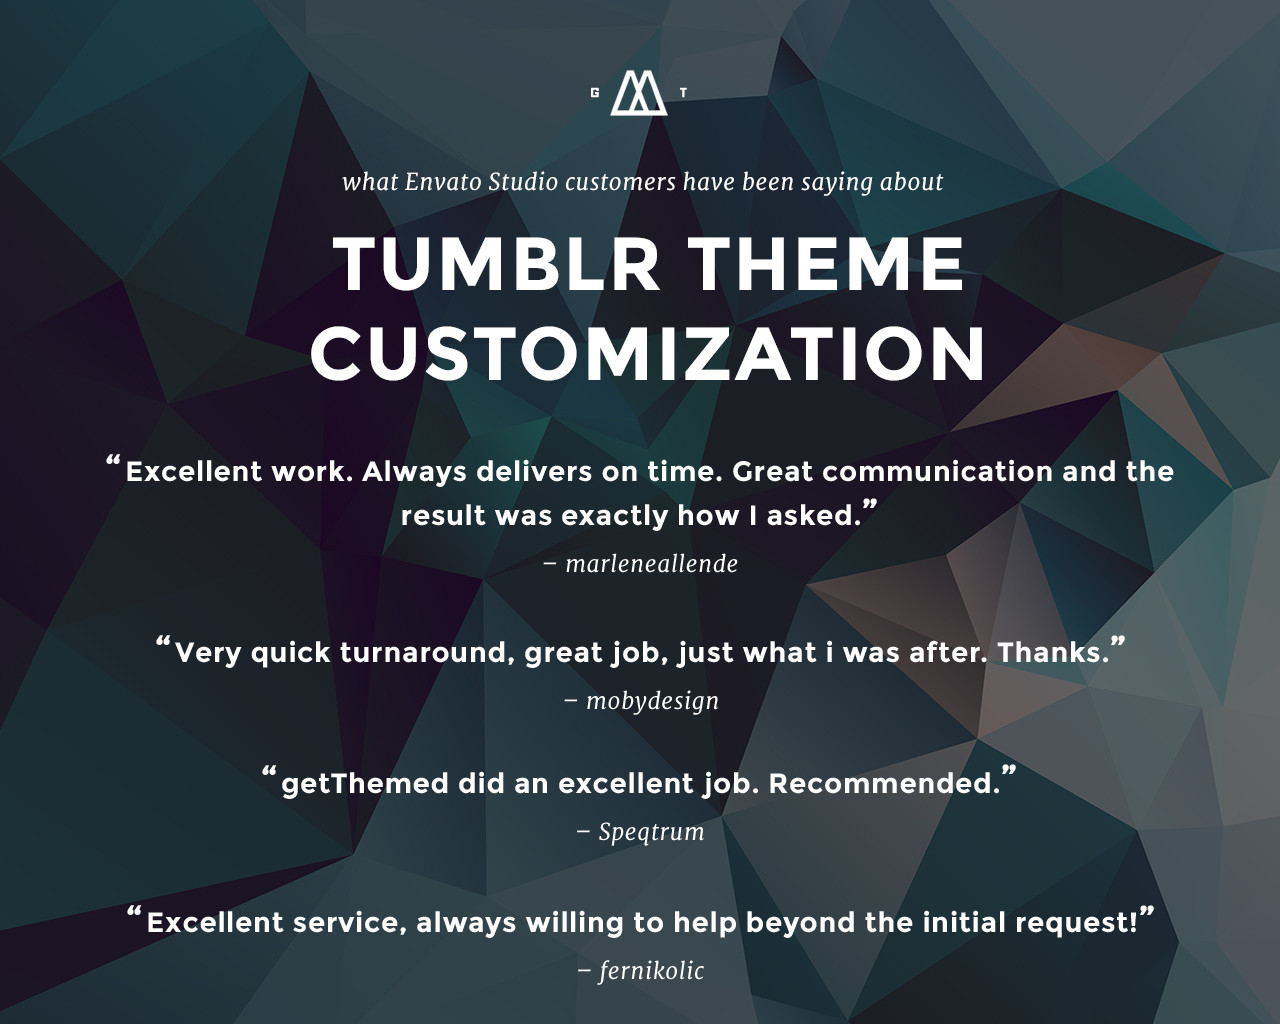 Tumblr Theme Customization by getThemed - 83493